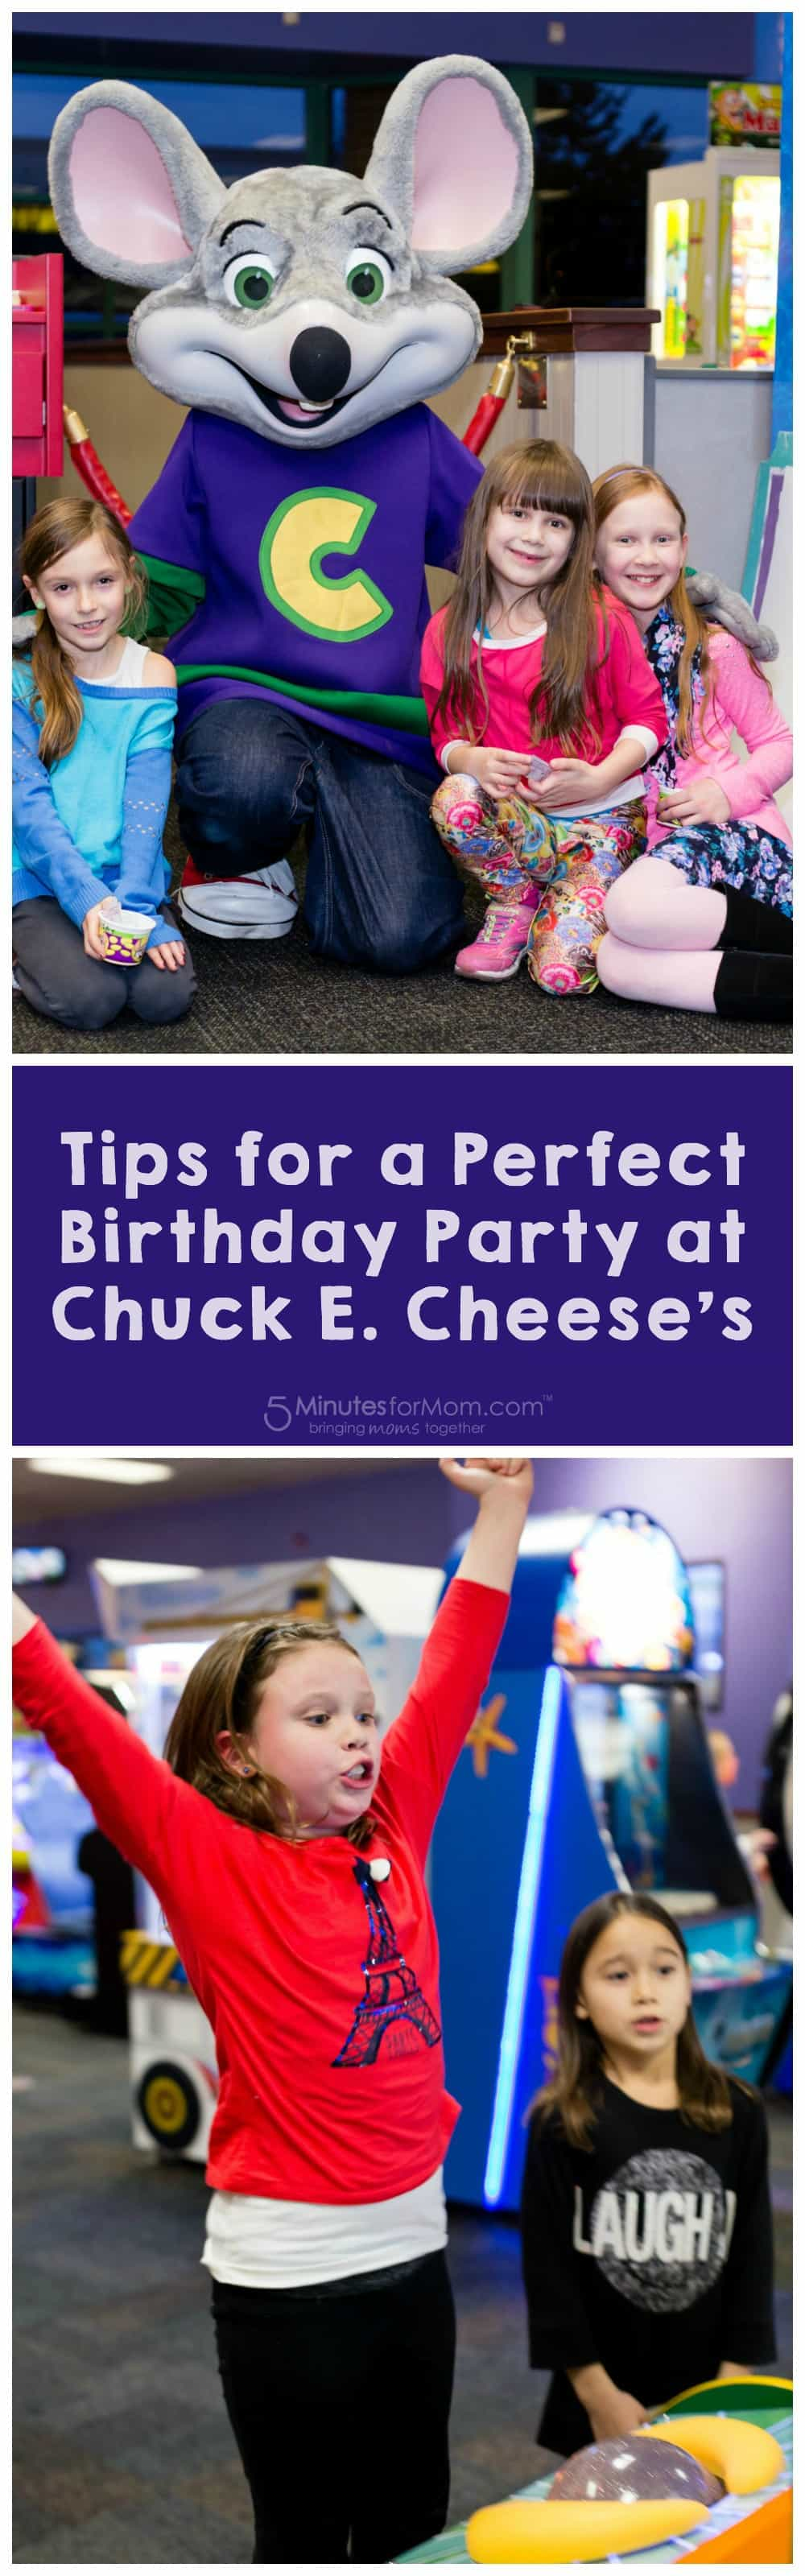 How to Throw a Perfect Birthday Party at Chuck E Cheese